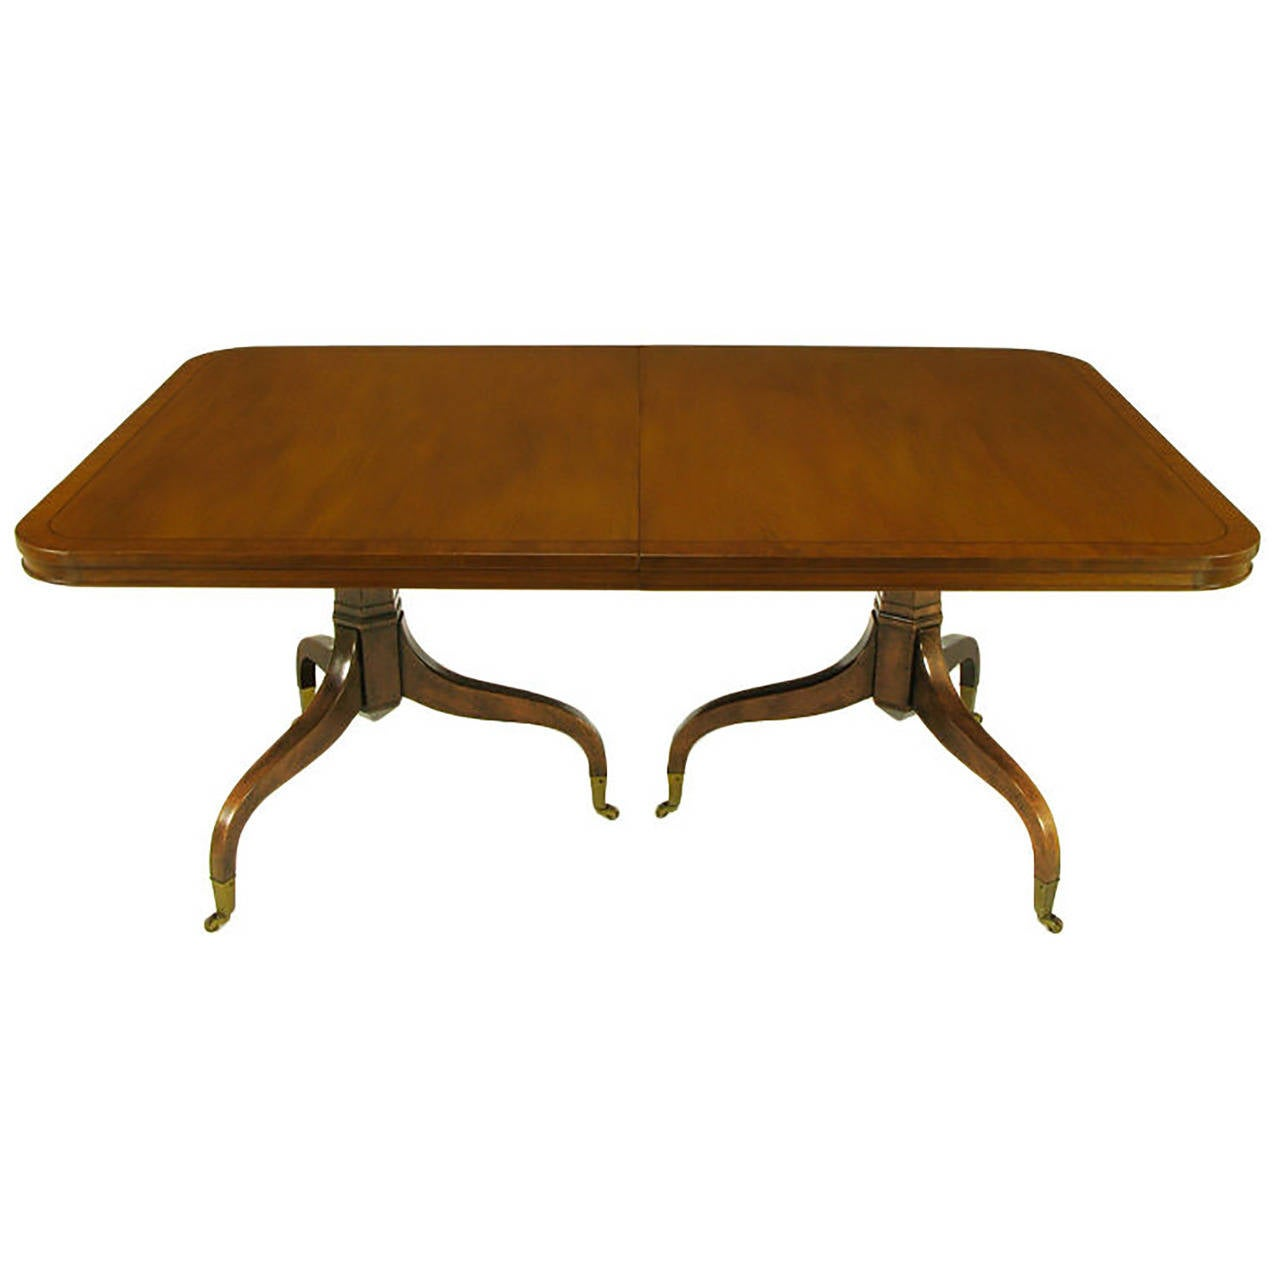 Unusual dining tables for sale full size of dining tables for Unusual dining tables for sale